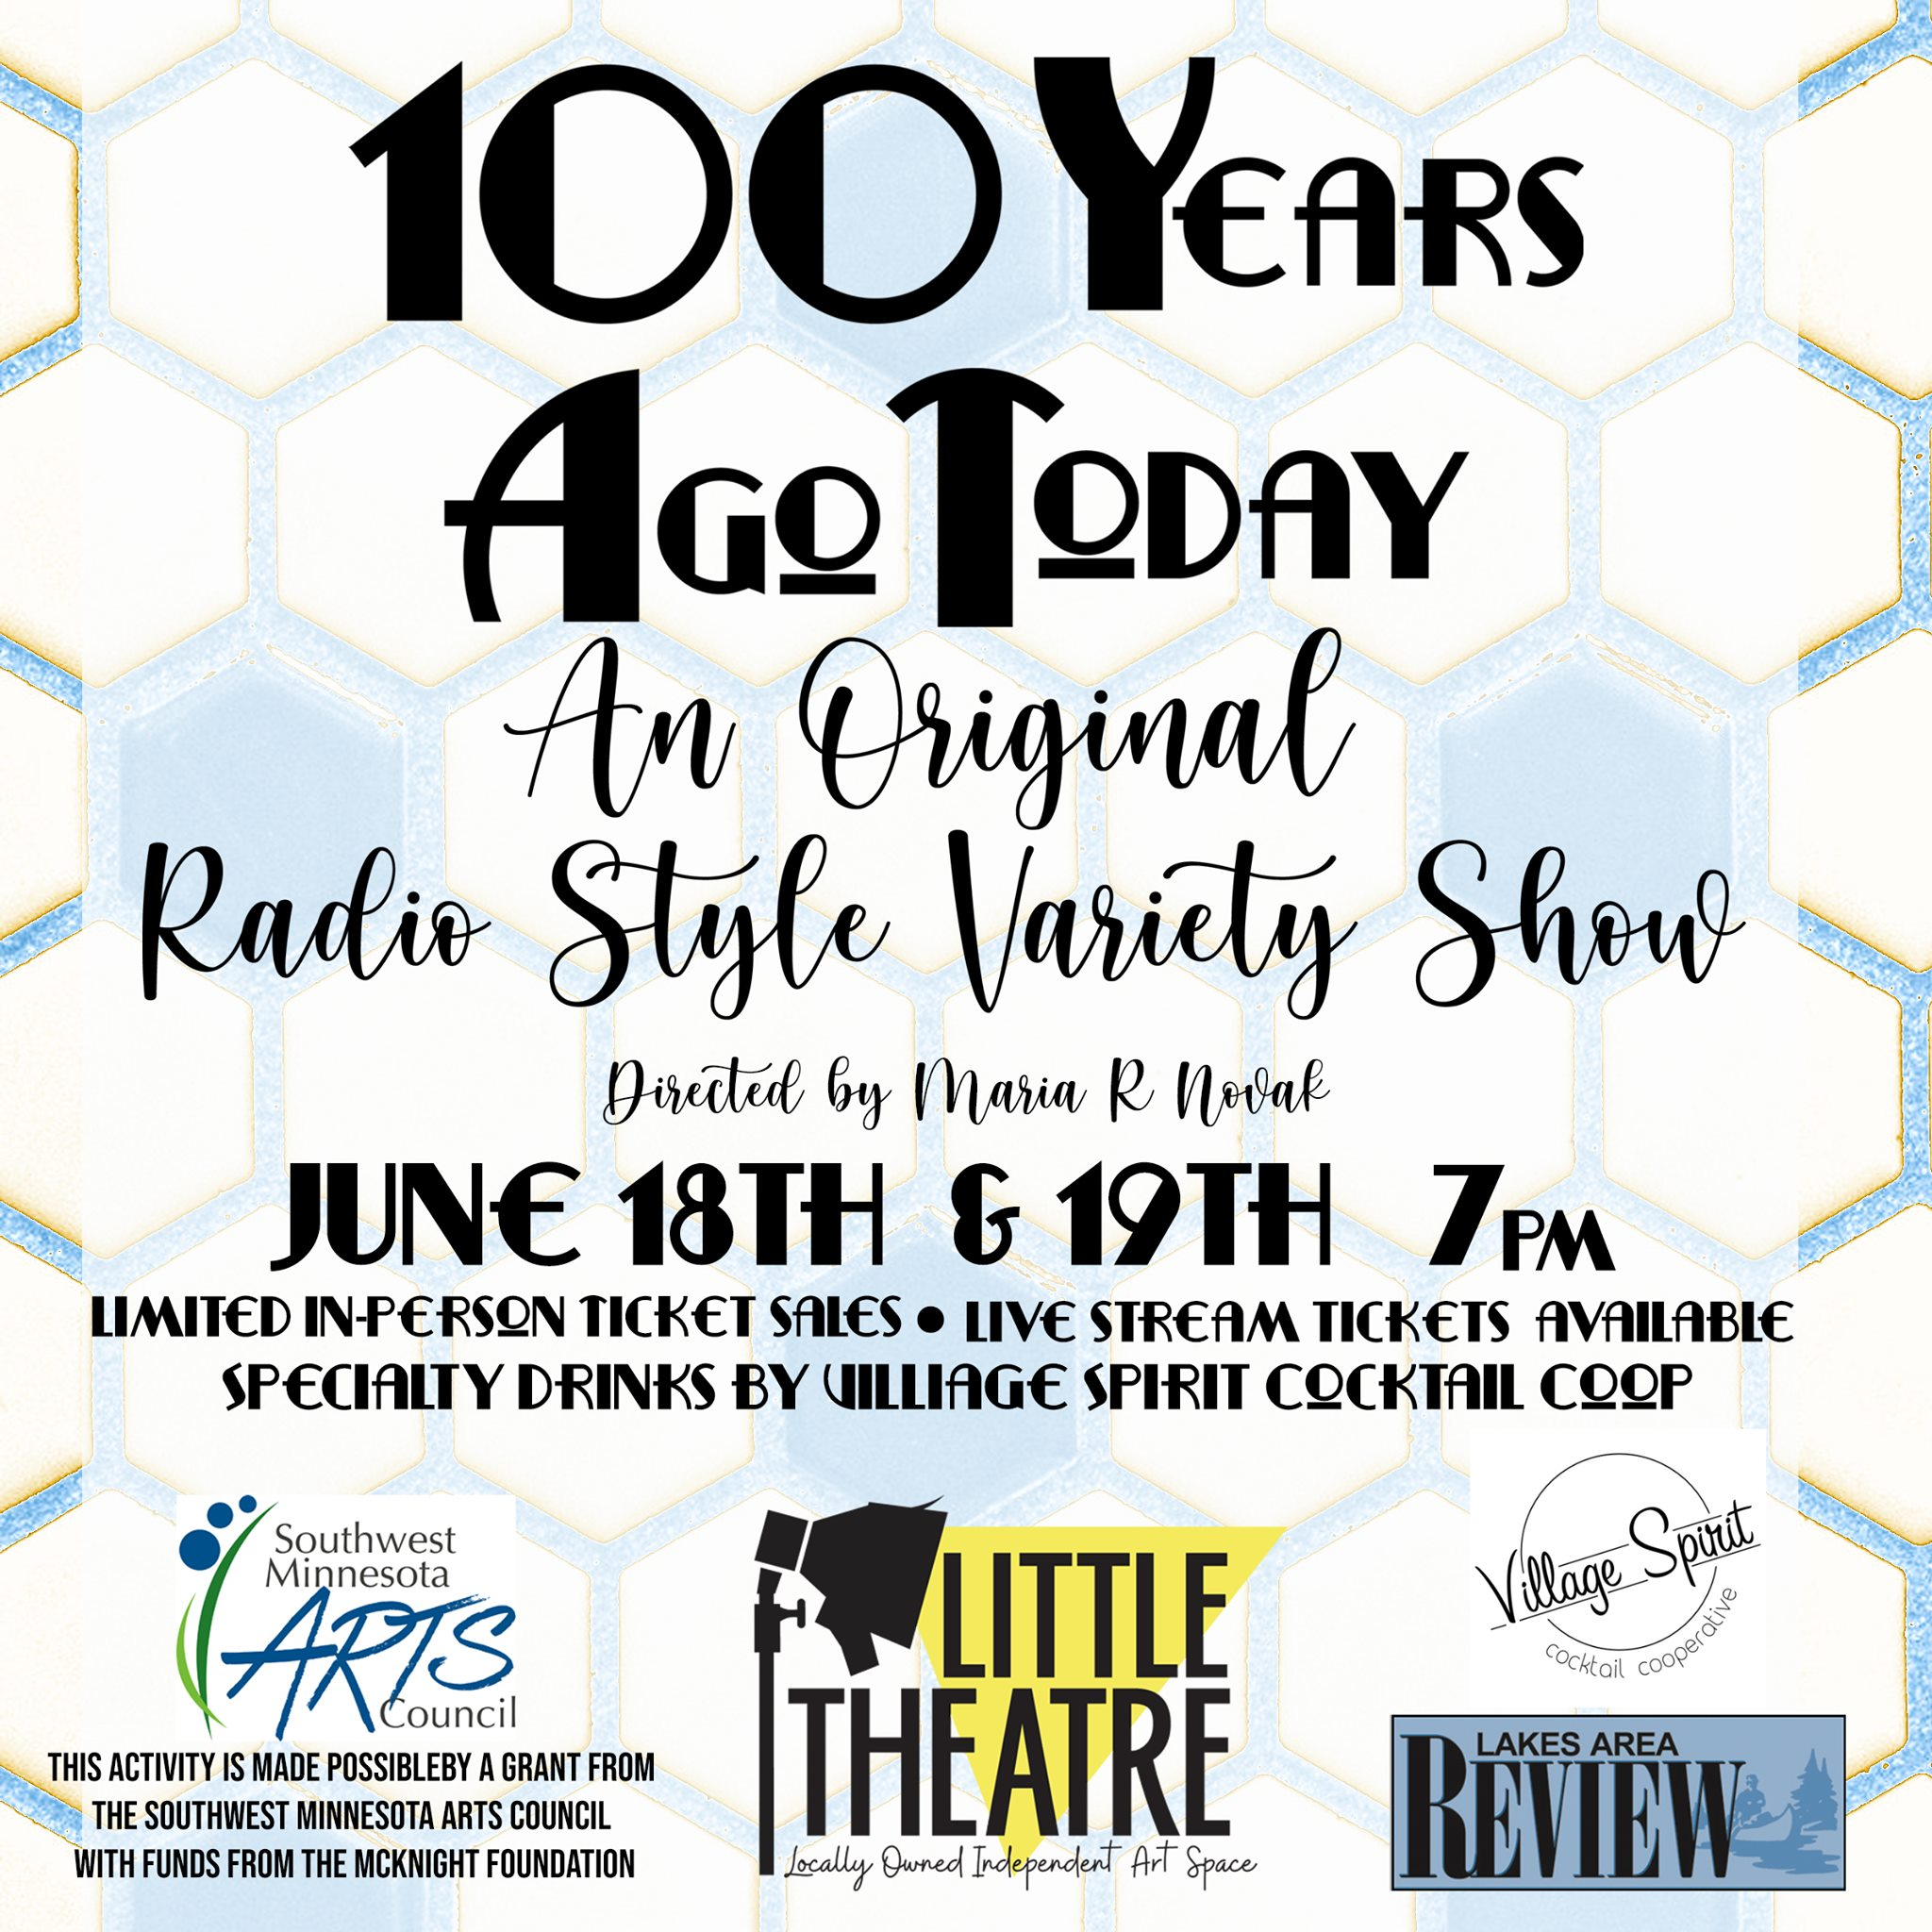 100 Years Ago Today. An original Radio Style Variety Show. Directed by Maria Novak. June 18th & 19th, 7 pm. Limited in-person ticket sales. Live stream tickets available. Specialty drinks by Village Spirit Cocktail Coop. Southwest Minnesota Arts Council. This activity is made possible by ta grant from the Southwest Minnesota Arts Council with funds from the McKnight Foundation. Little Theatre: Locally owned Independent Art Space. Lakes Area Review.